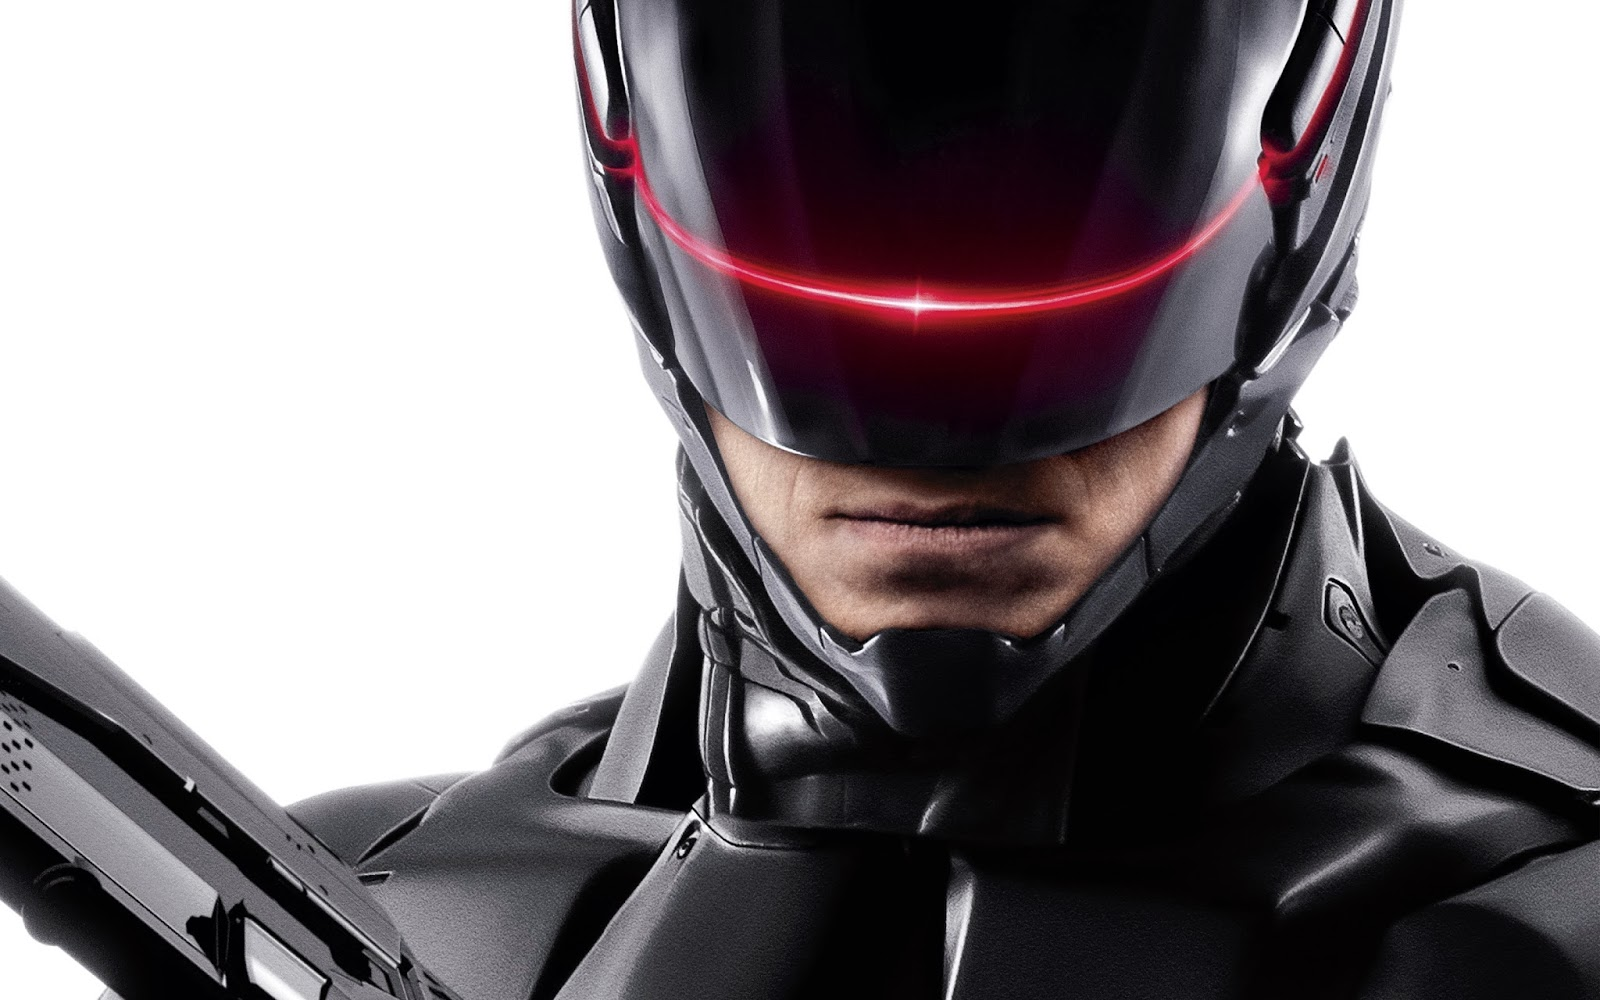 RoboCop Cast Review Plot Trailer